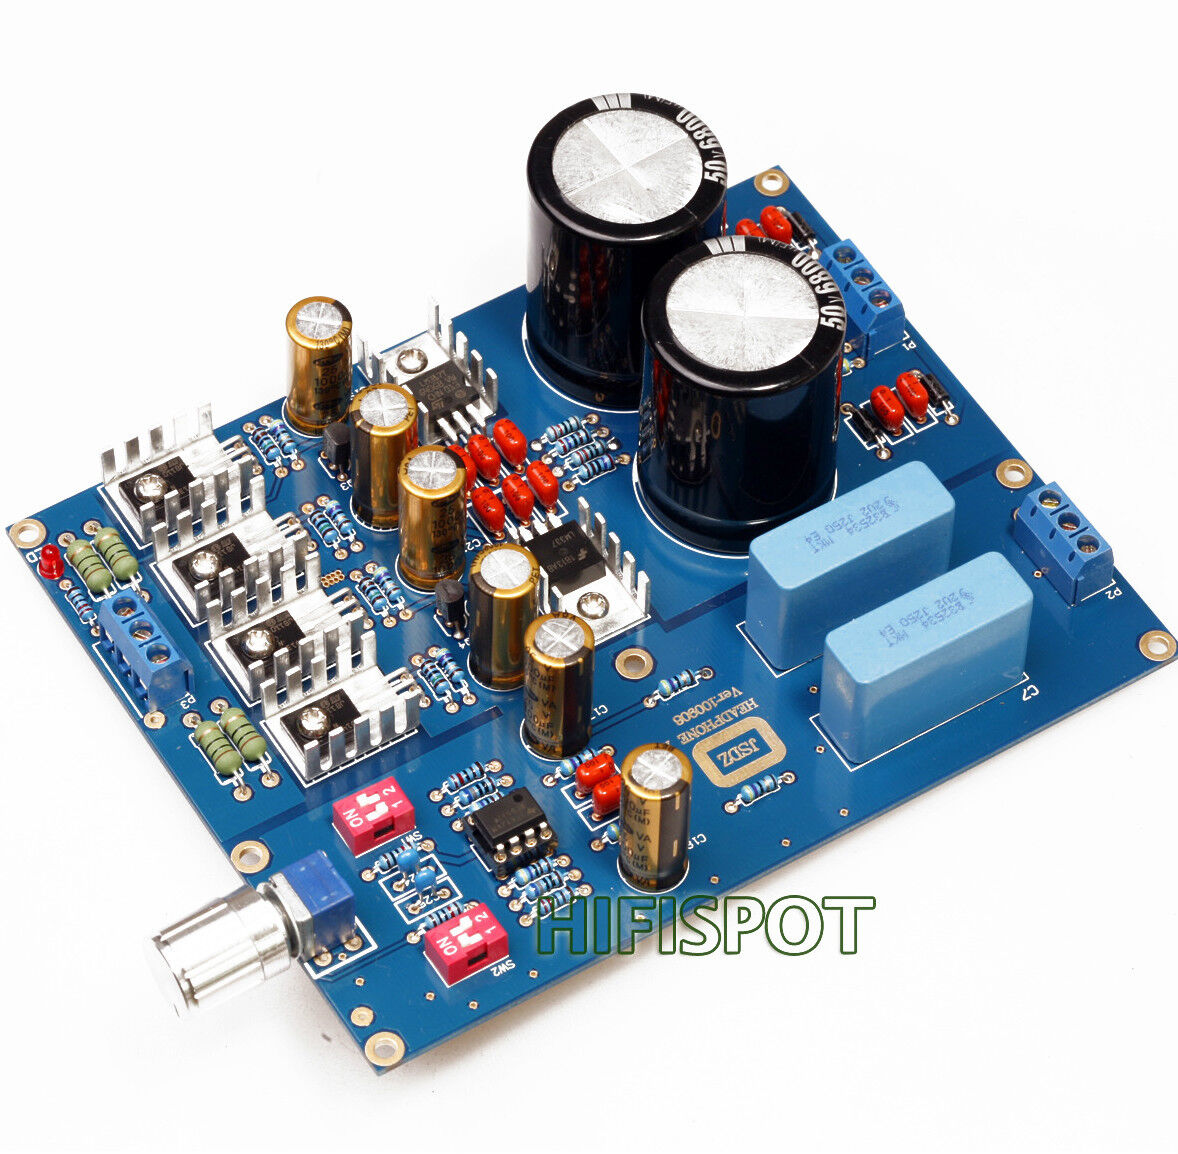 Zen Headphone Amplifier Electronics Diy Kit Base On Lehmann Amp Circuit Software Gt Layout Creator Fever Building My